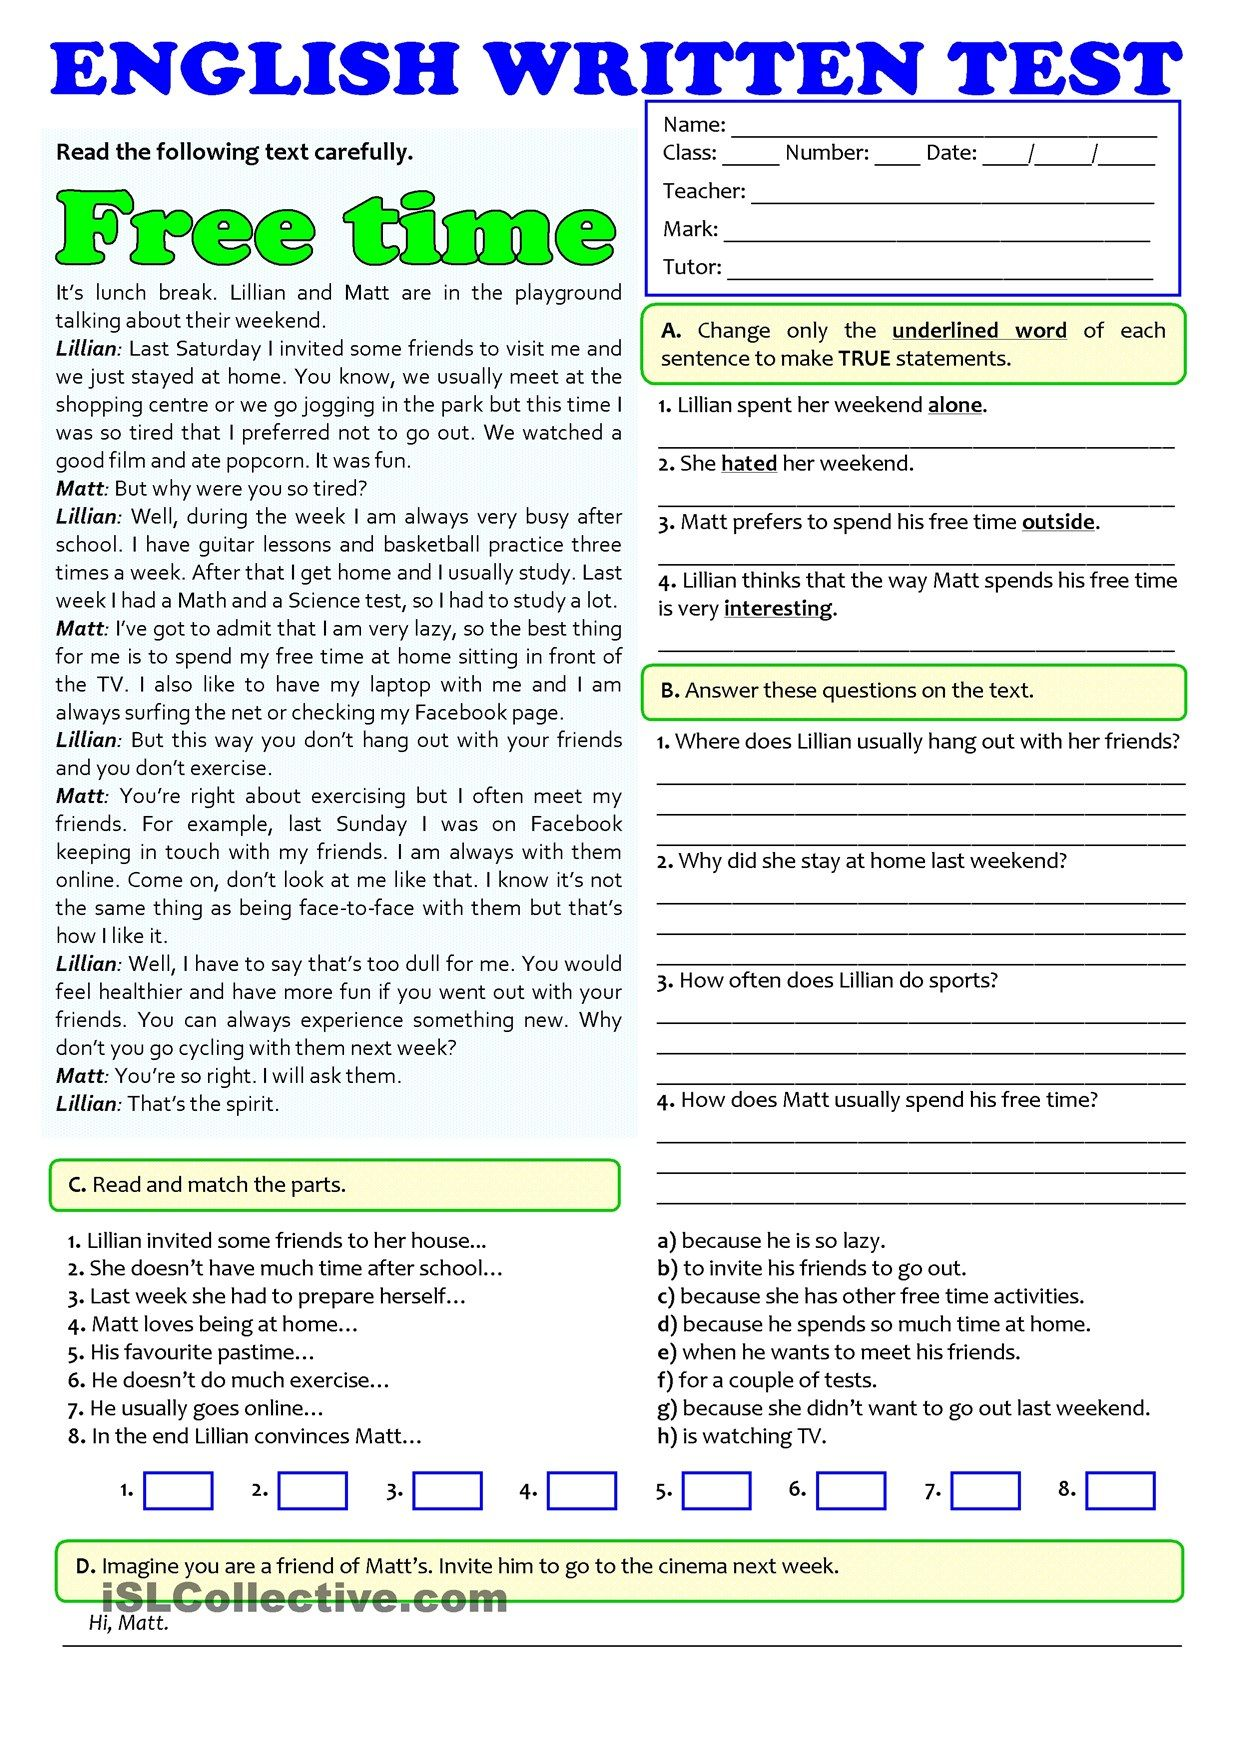 FREE TIME ACTIVITIES - TEST (A1-A2) | Exercises | Pinterest ...